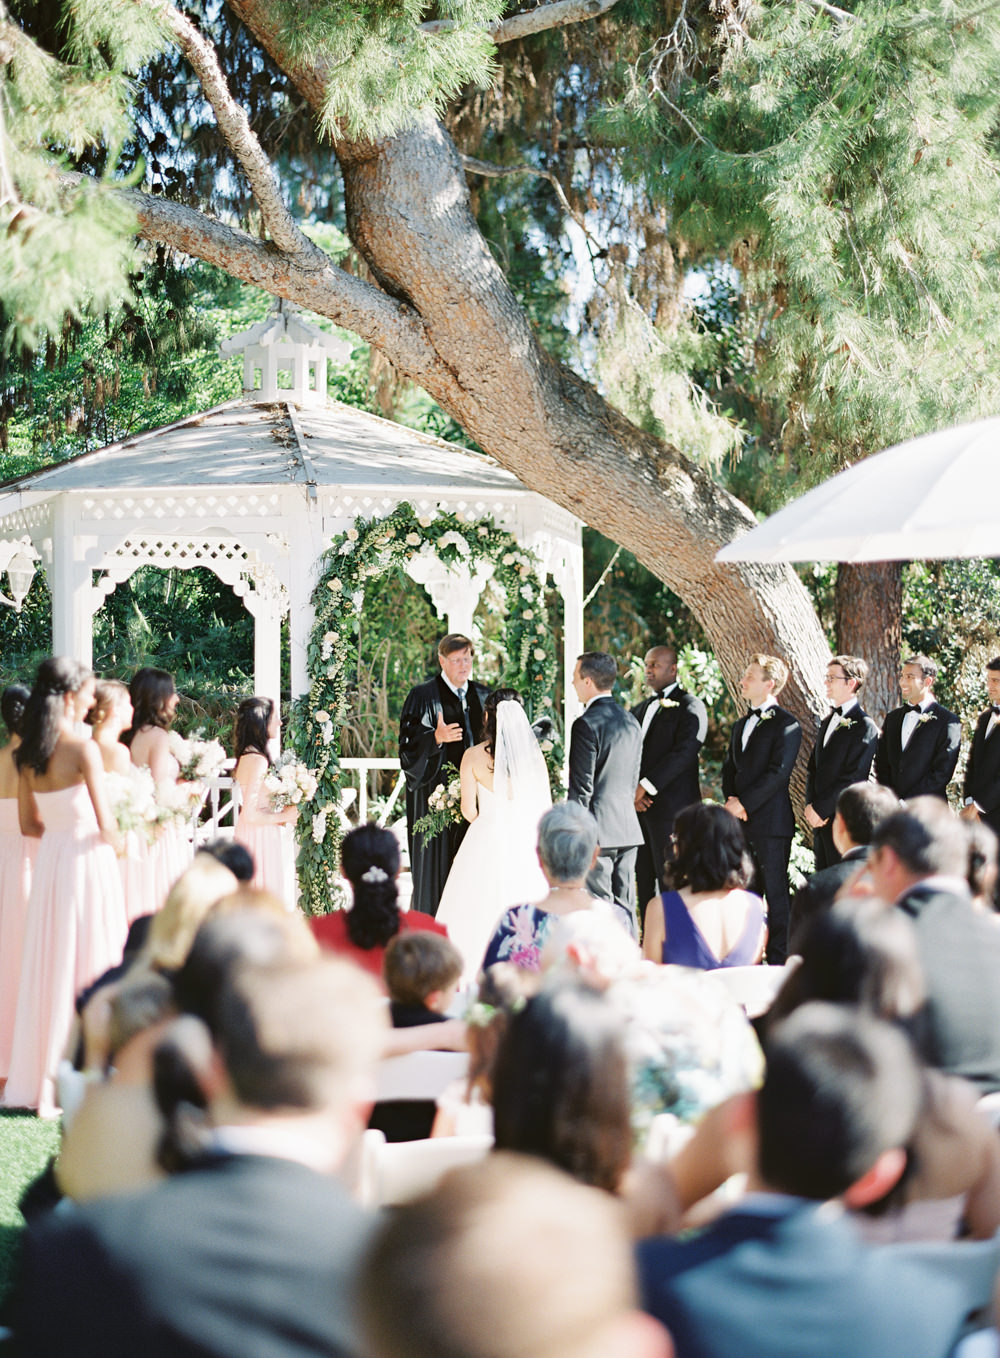 RomanticGardenWedding_WhiskersandWillow_077.jpg